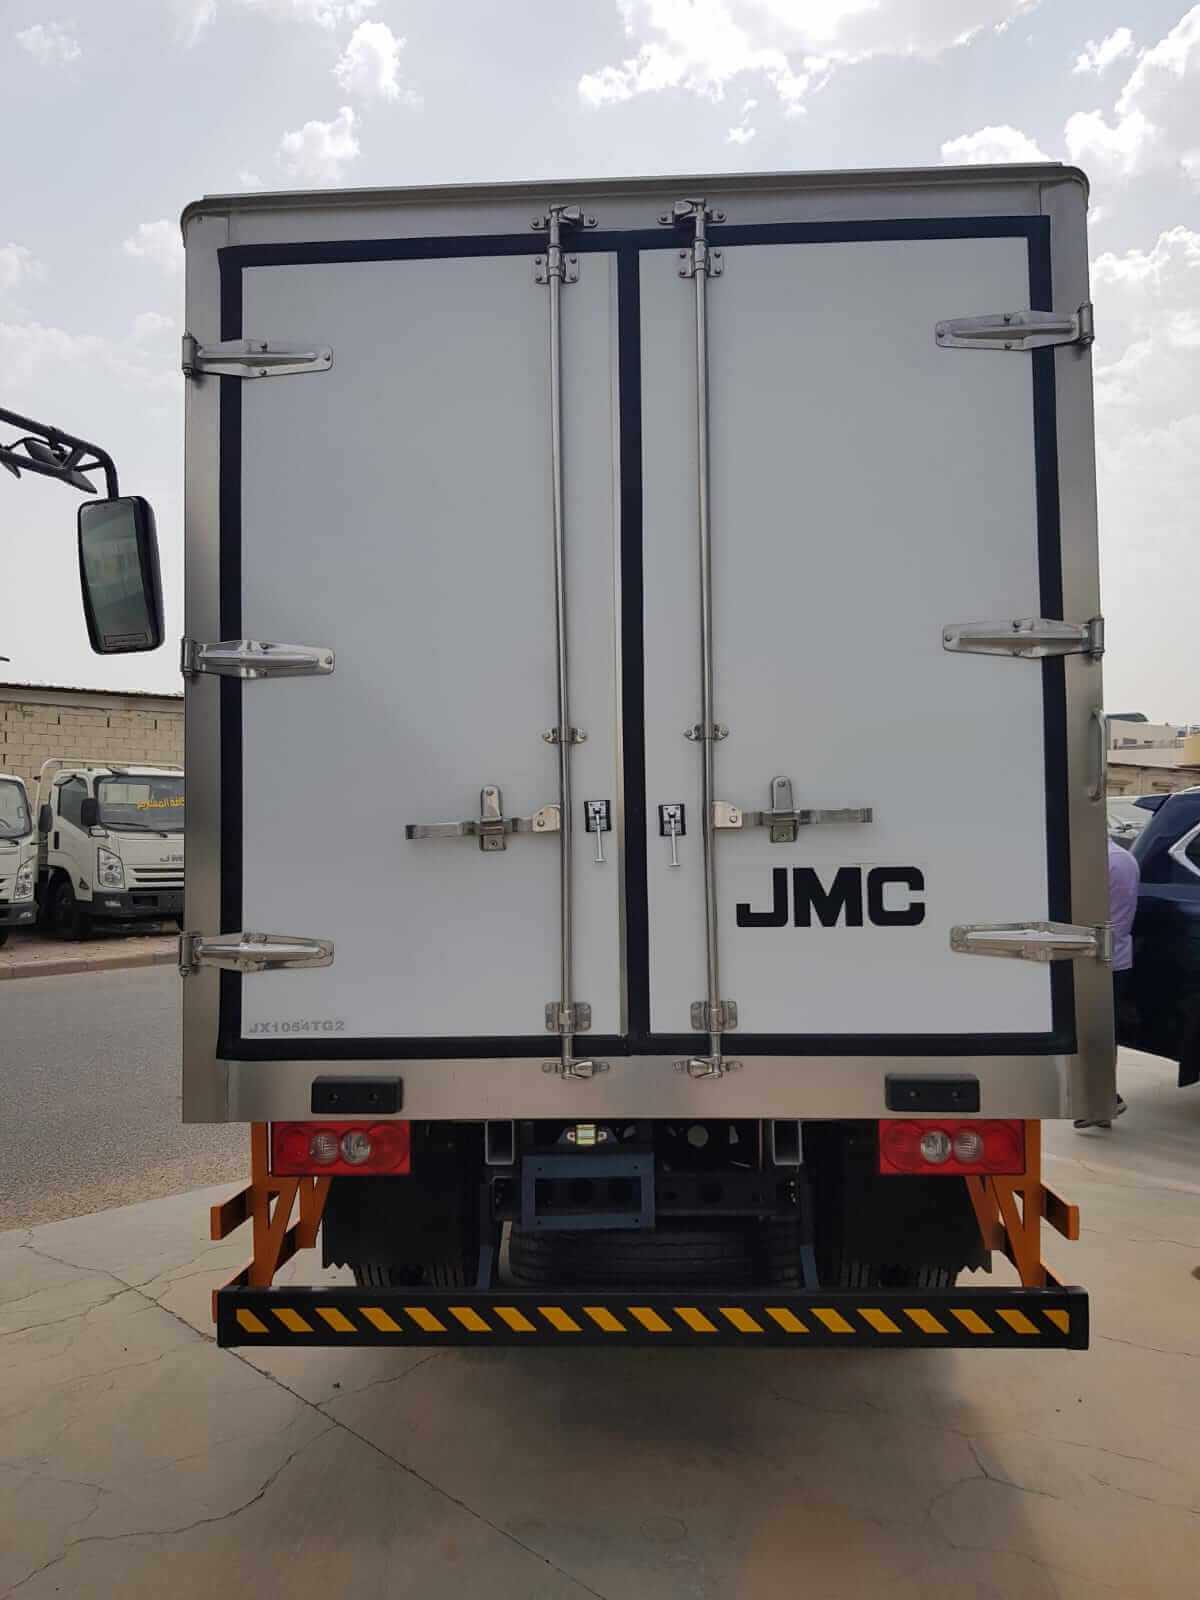 JMC Carrying plus - Refrigerated Truck 2020